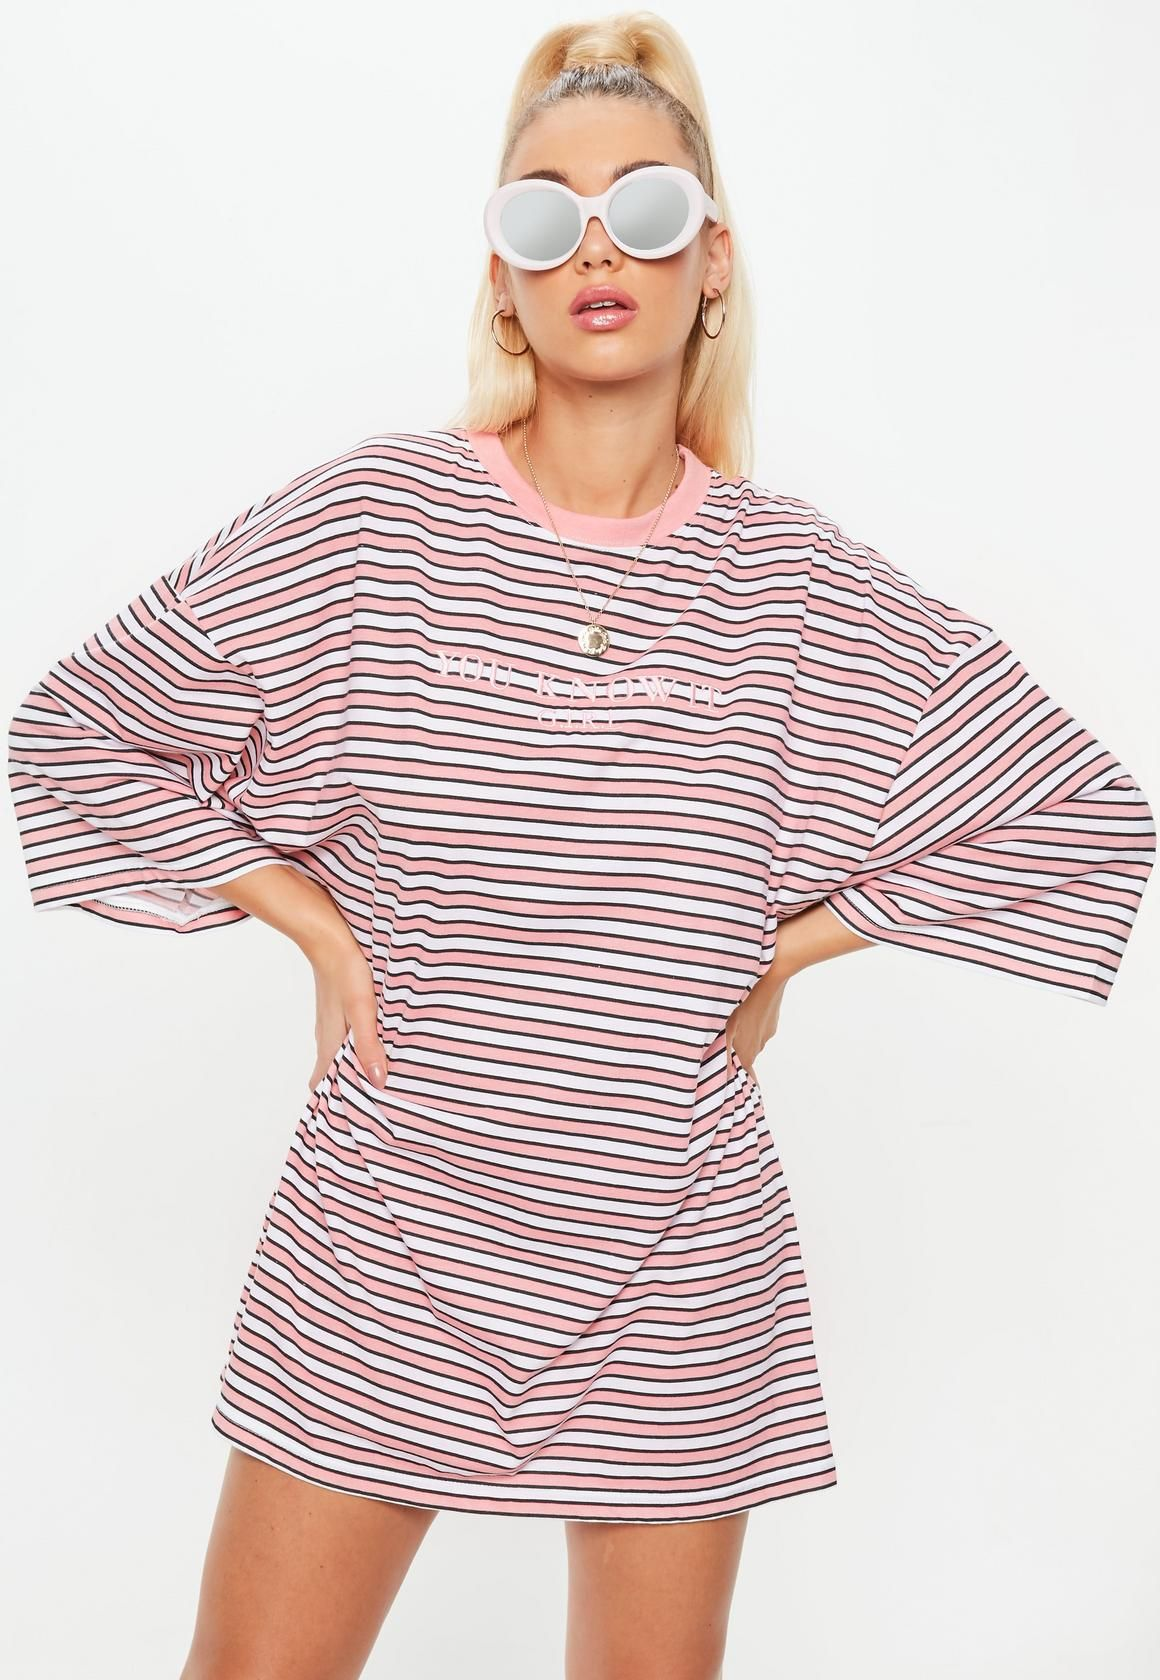 Missguided - Pink Oversized You Know It Girl Slogan Striped T-Shirt Dress 539f1a252